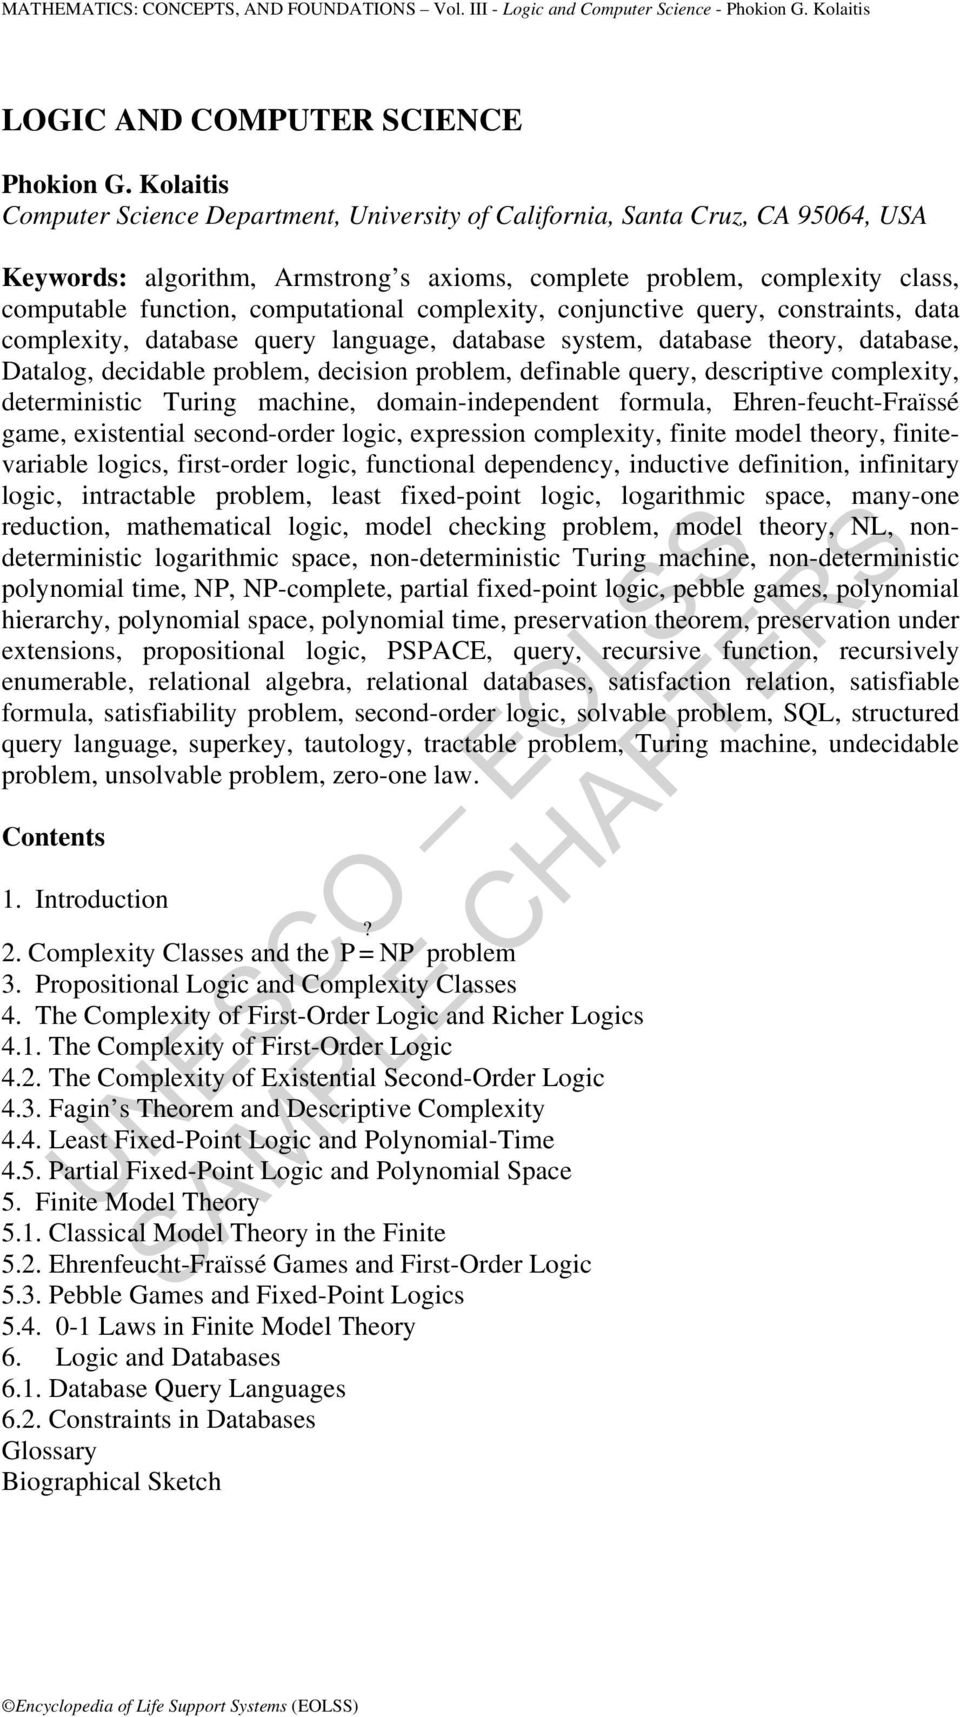 computational complexity, conjunctive query, constraints, data complexity, database query language, database system, database theory, database, Datalog, decidable problem, decision problem, definable